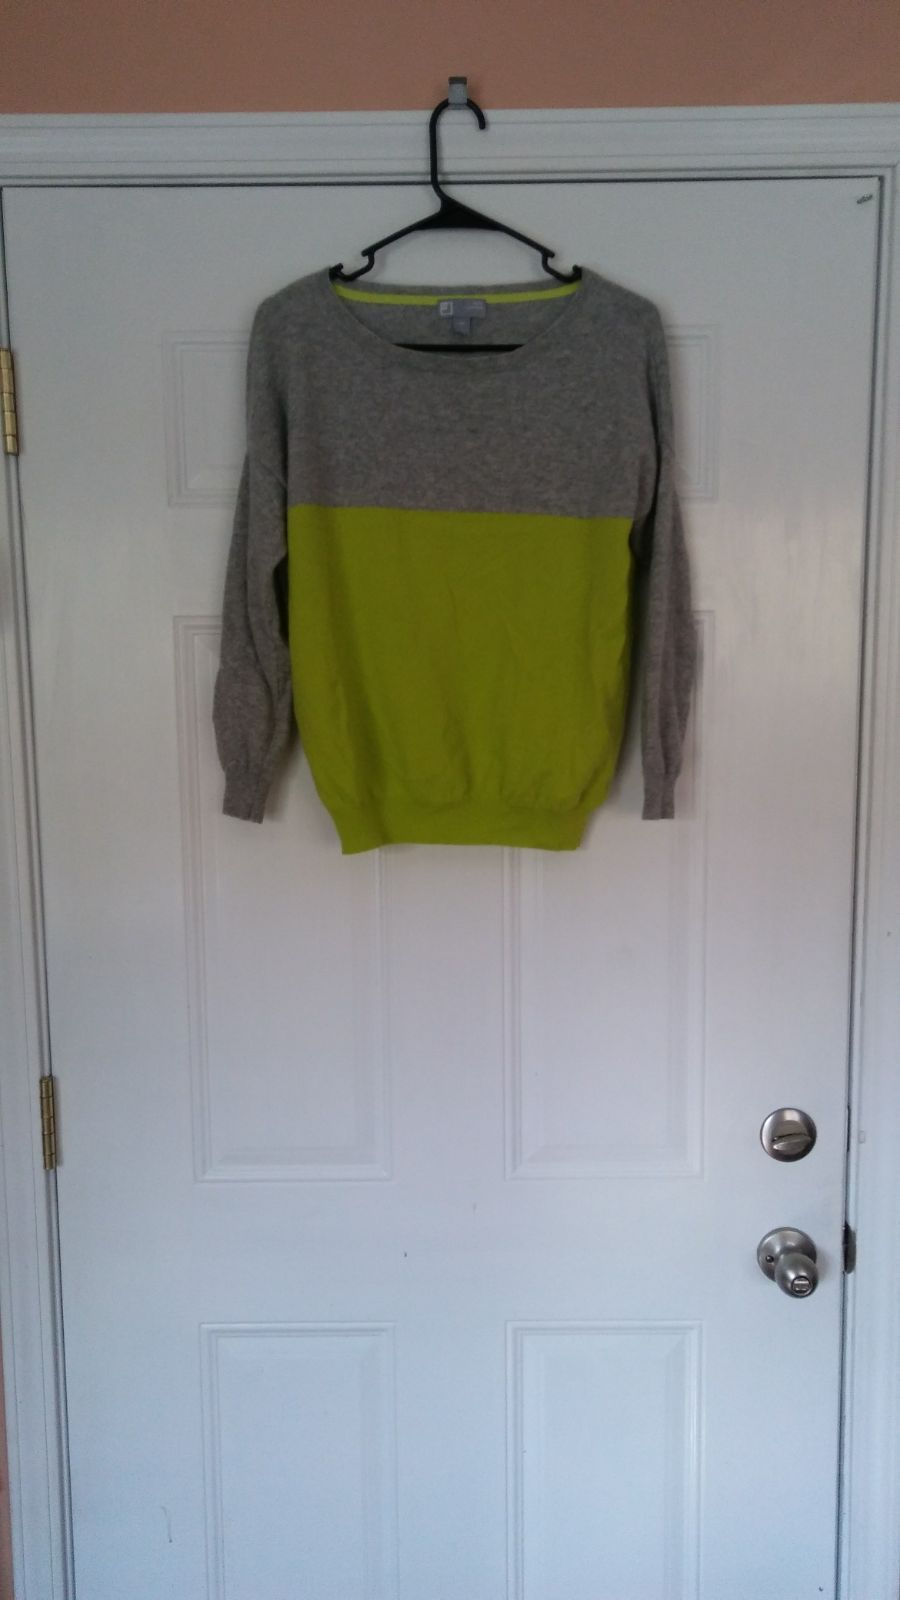 100 percent cashmere sweater. NWOT! - Mercari: BUY & SELL THINGS ...